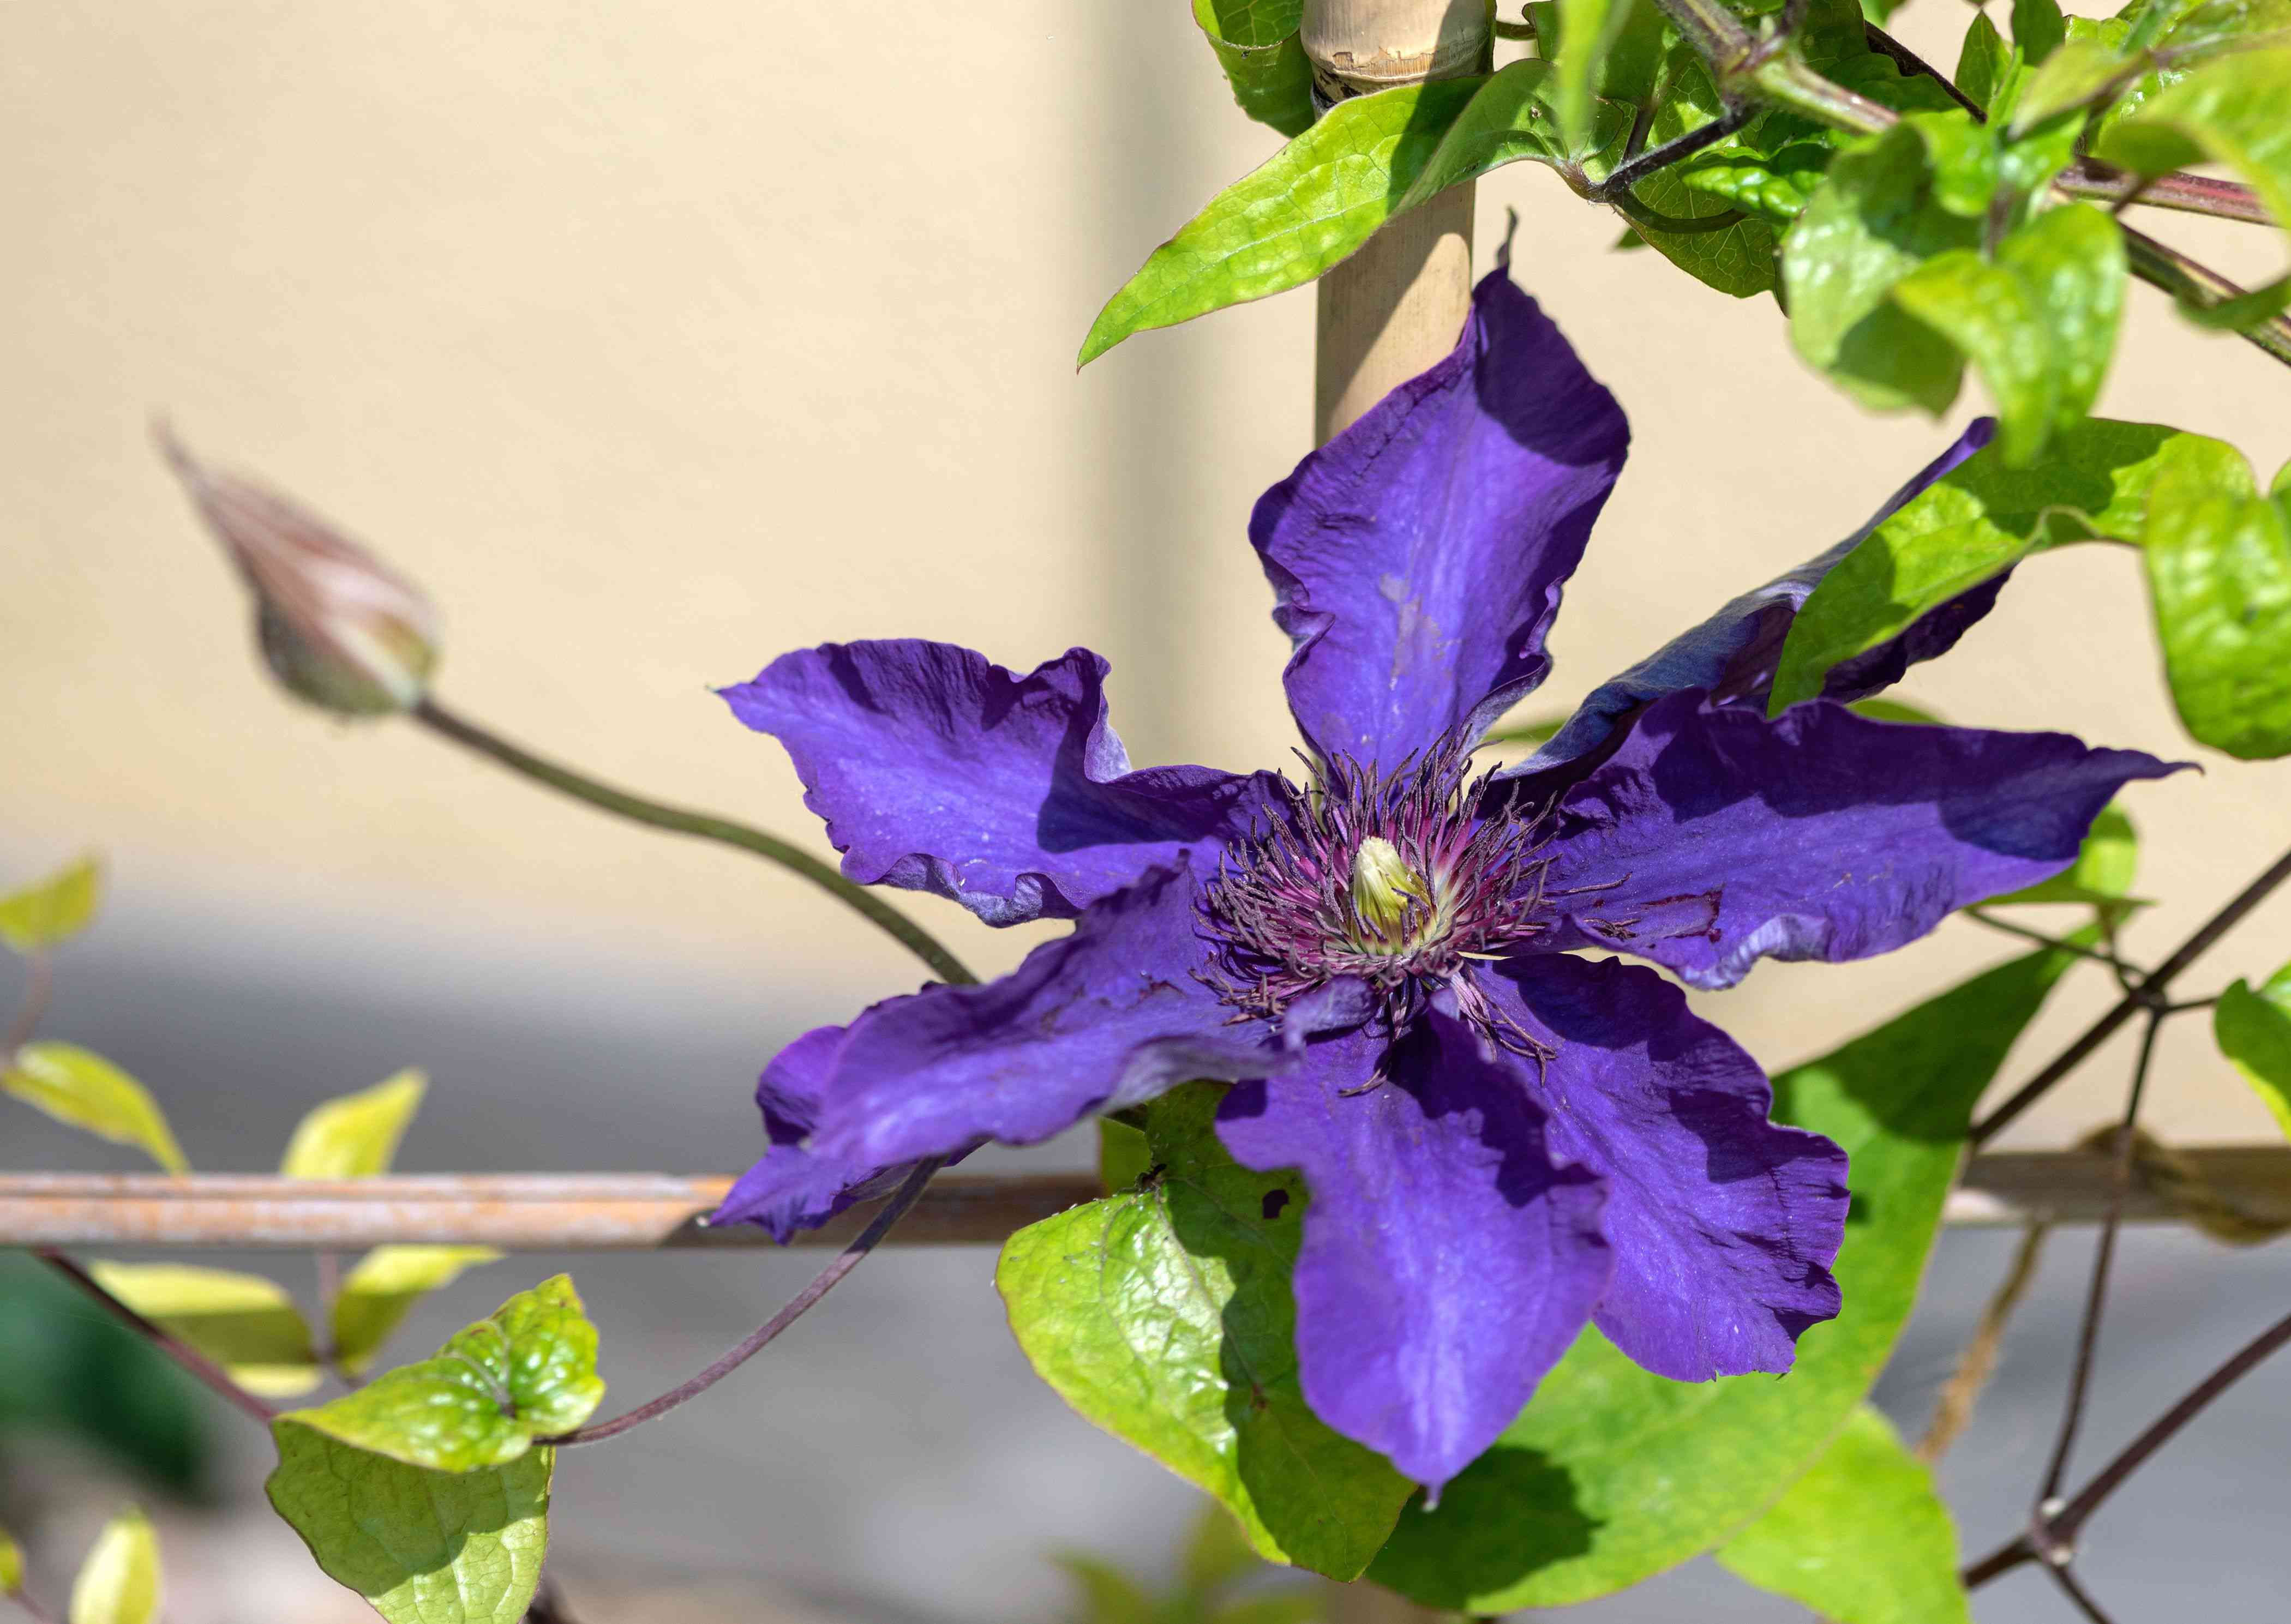 The President Clematis variety does not cause allergies